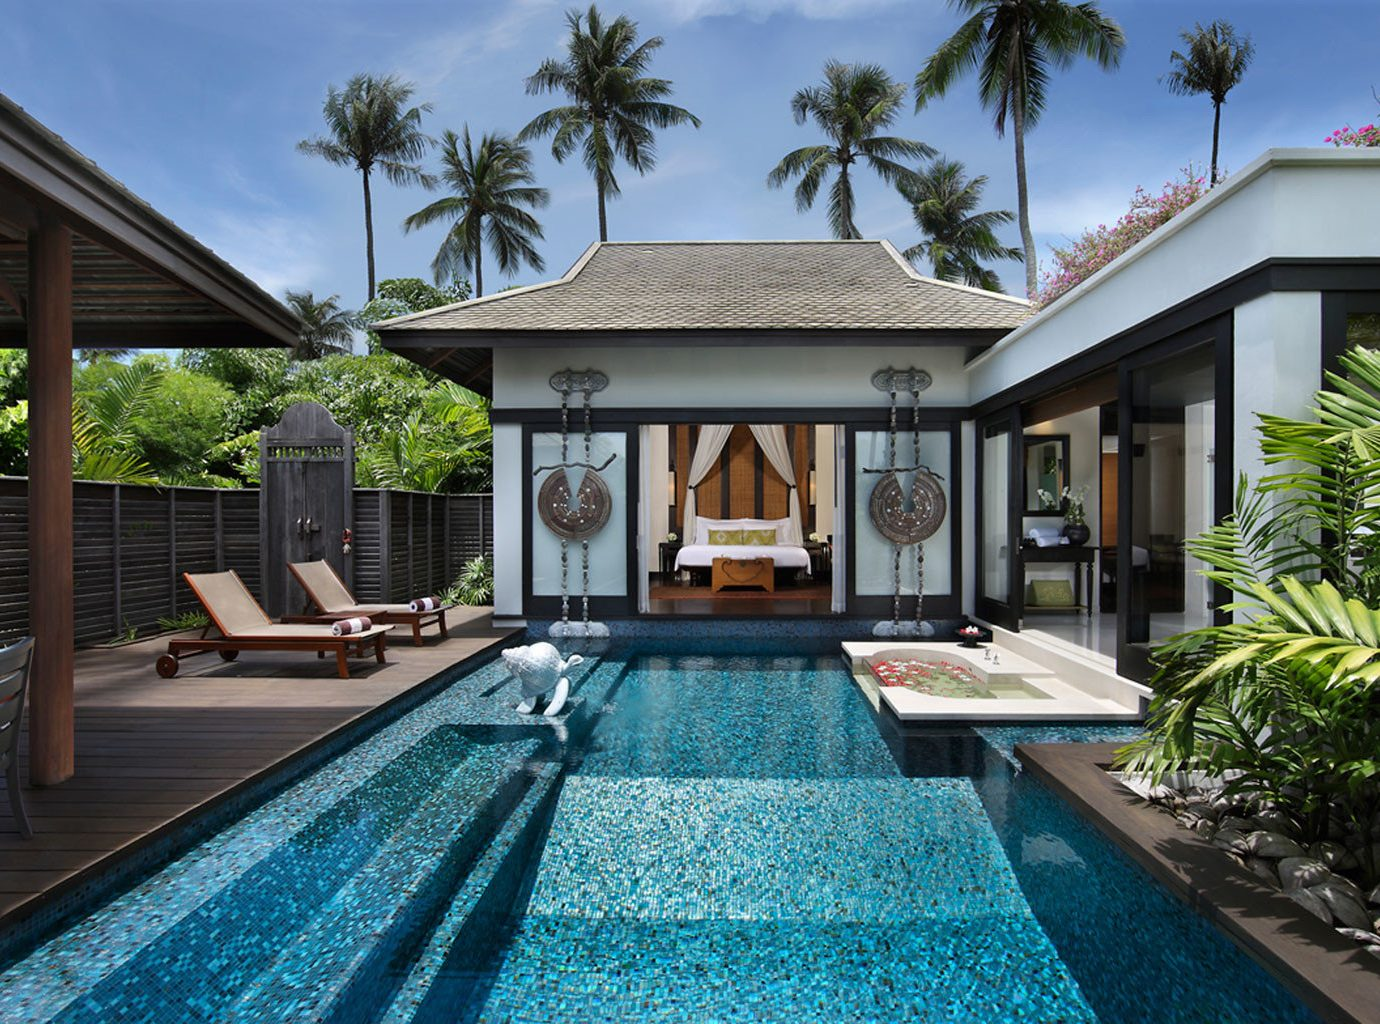 Hotels outdoor sky tree swimming pool building property estate Resort house home backyard Villa real estate condominium mansion cottage outdoor structure palm Garden stone walkway